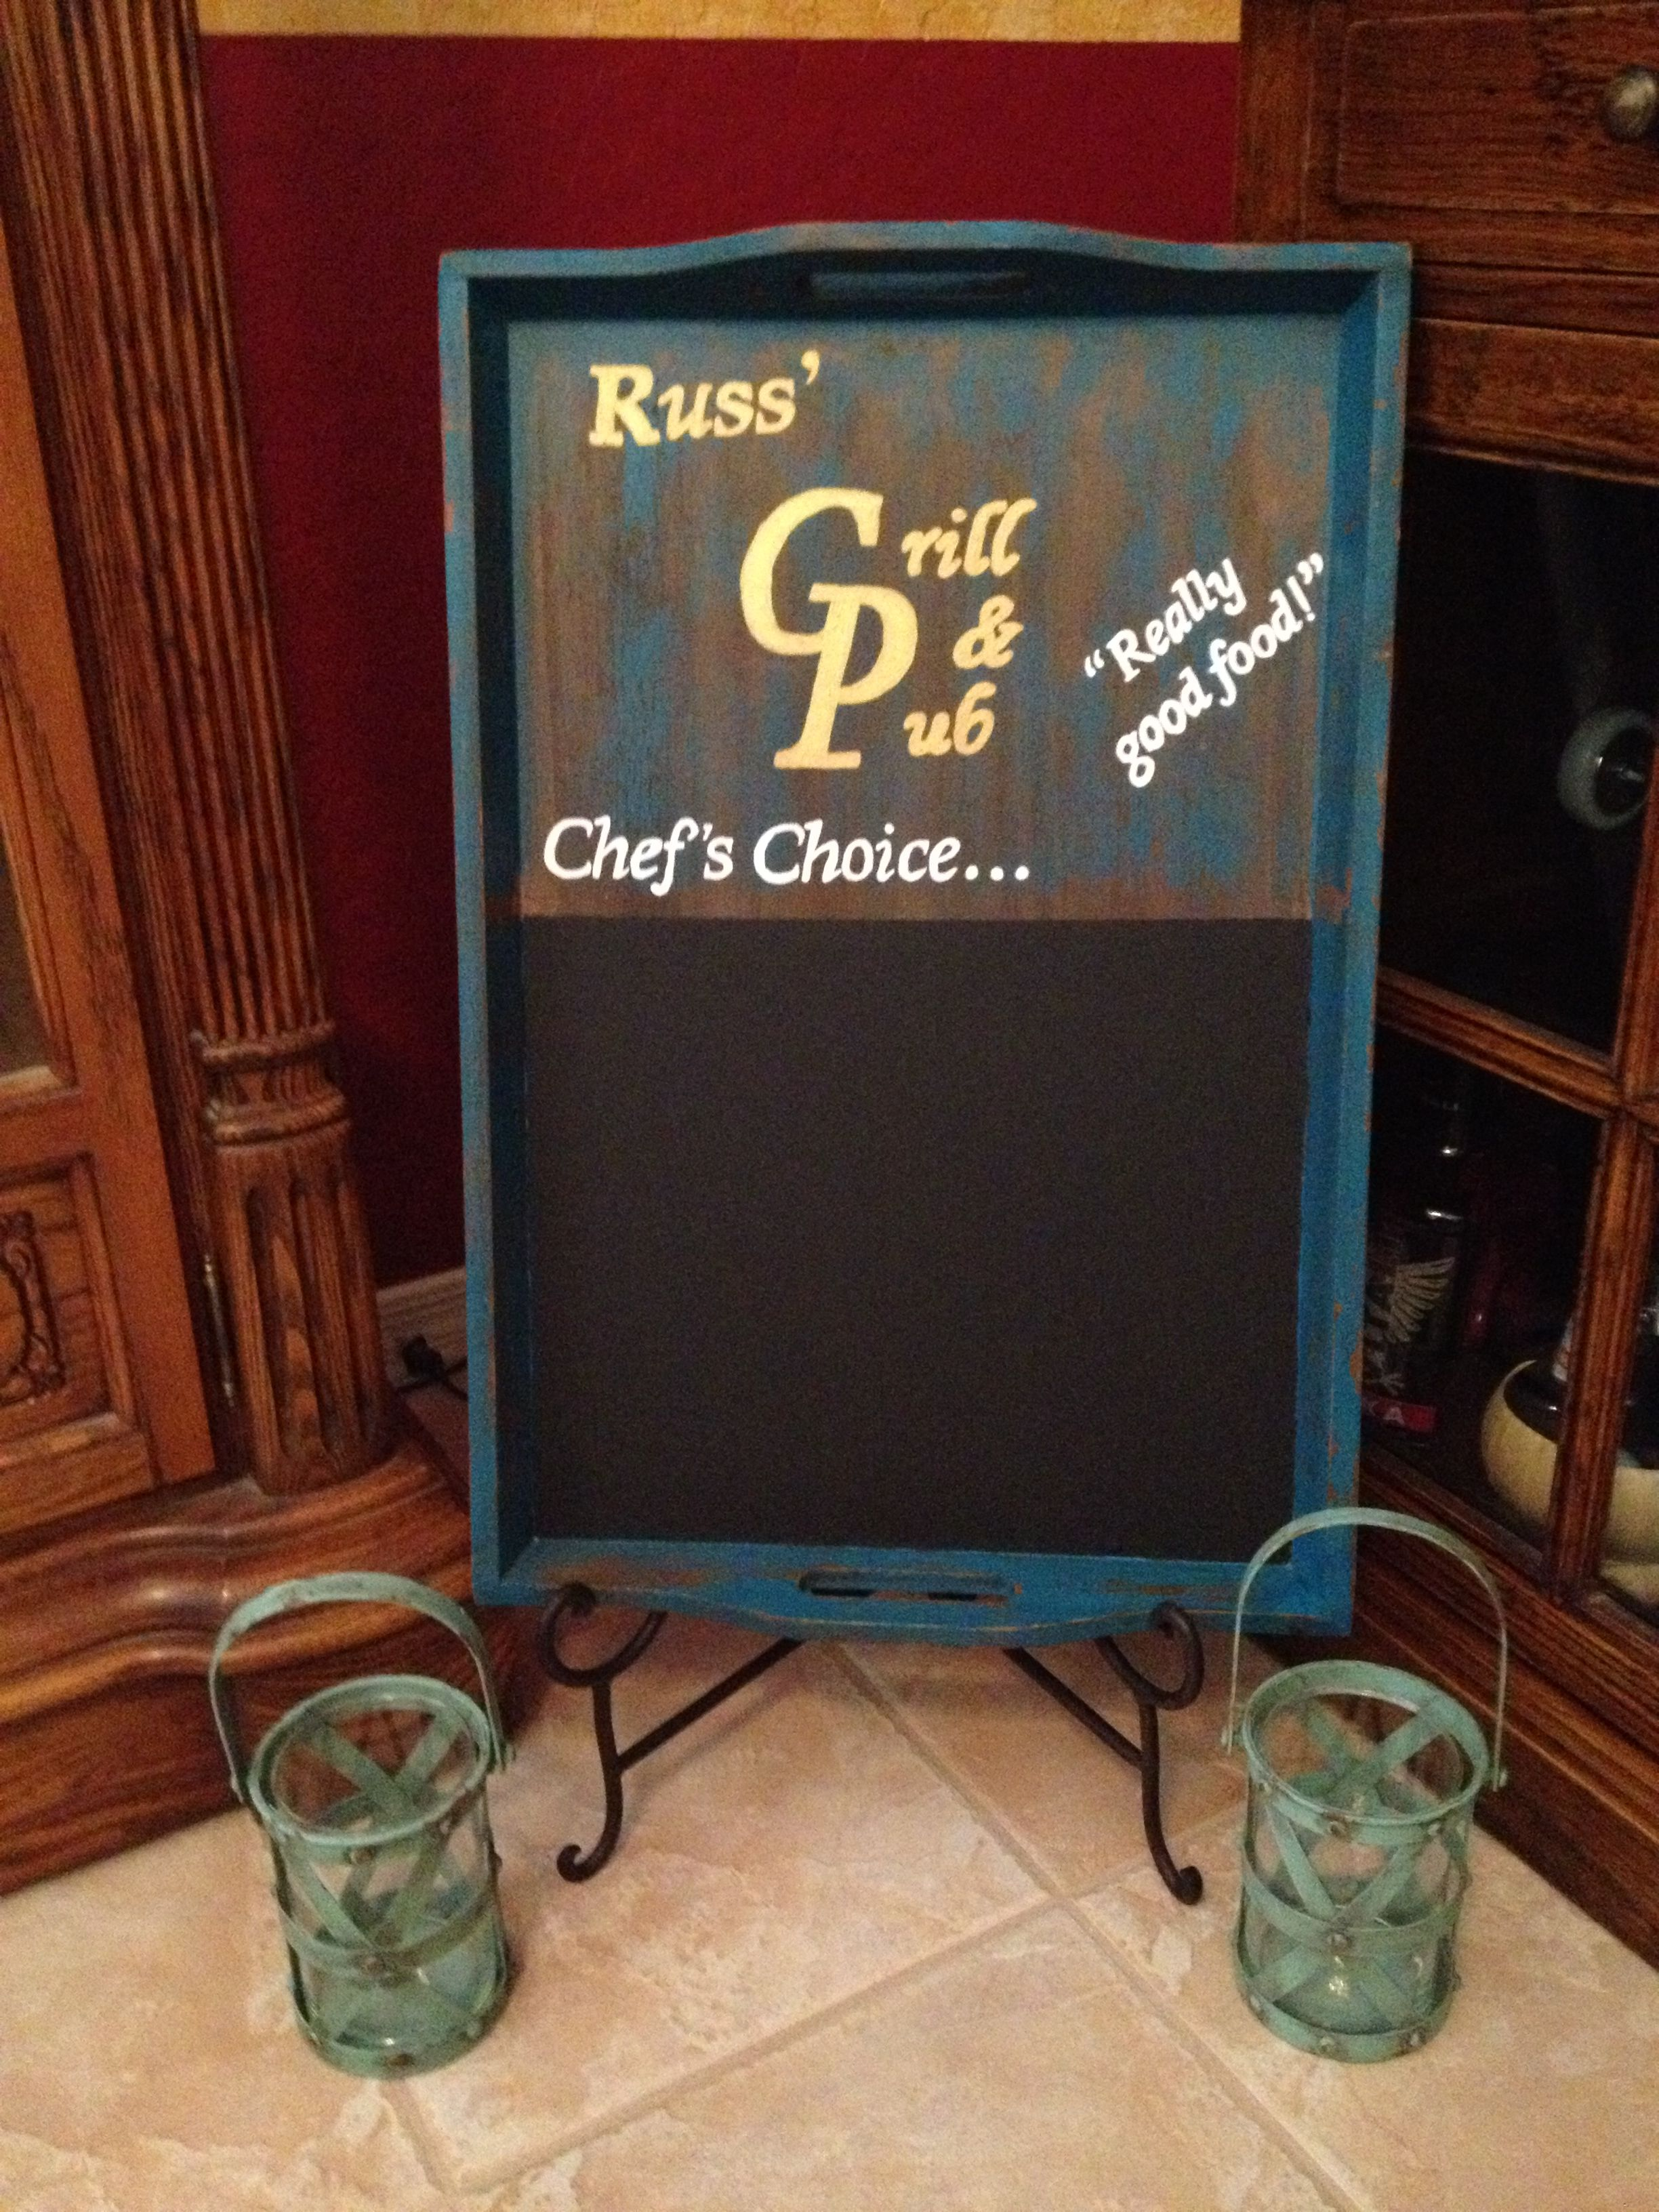 Diy Restaurant Chalkboard Sign This Is Going To Go By My Dad S New Built In Barbecue Grill Ou Chalkboard Paint Chalkboard Signs Chalkboard Quote Art